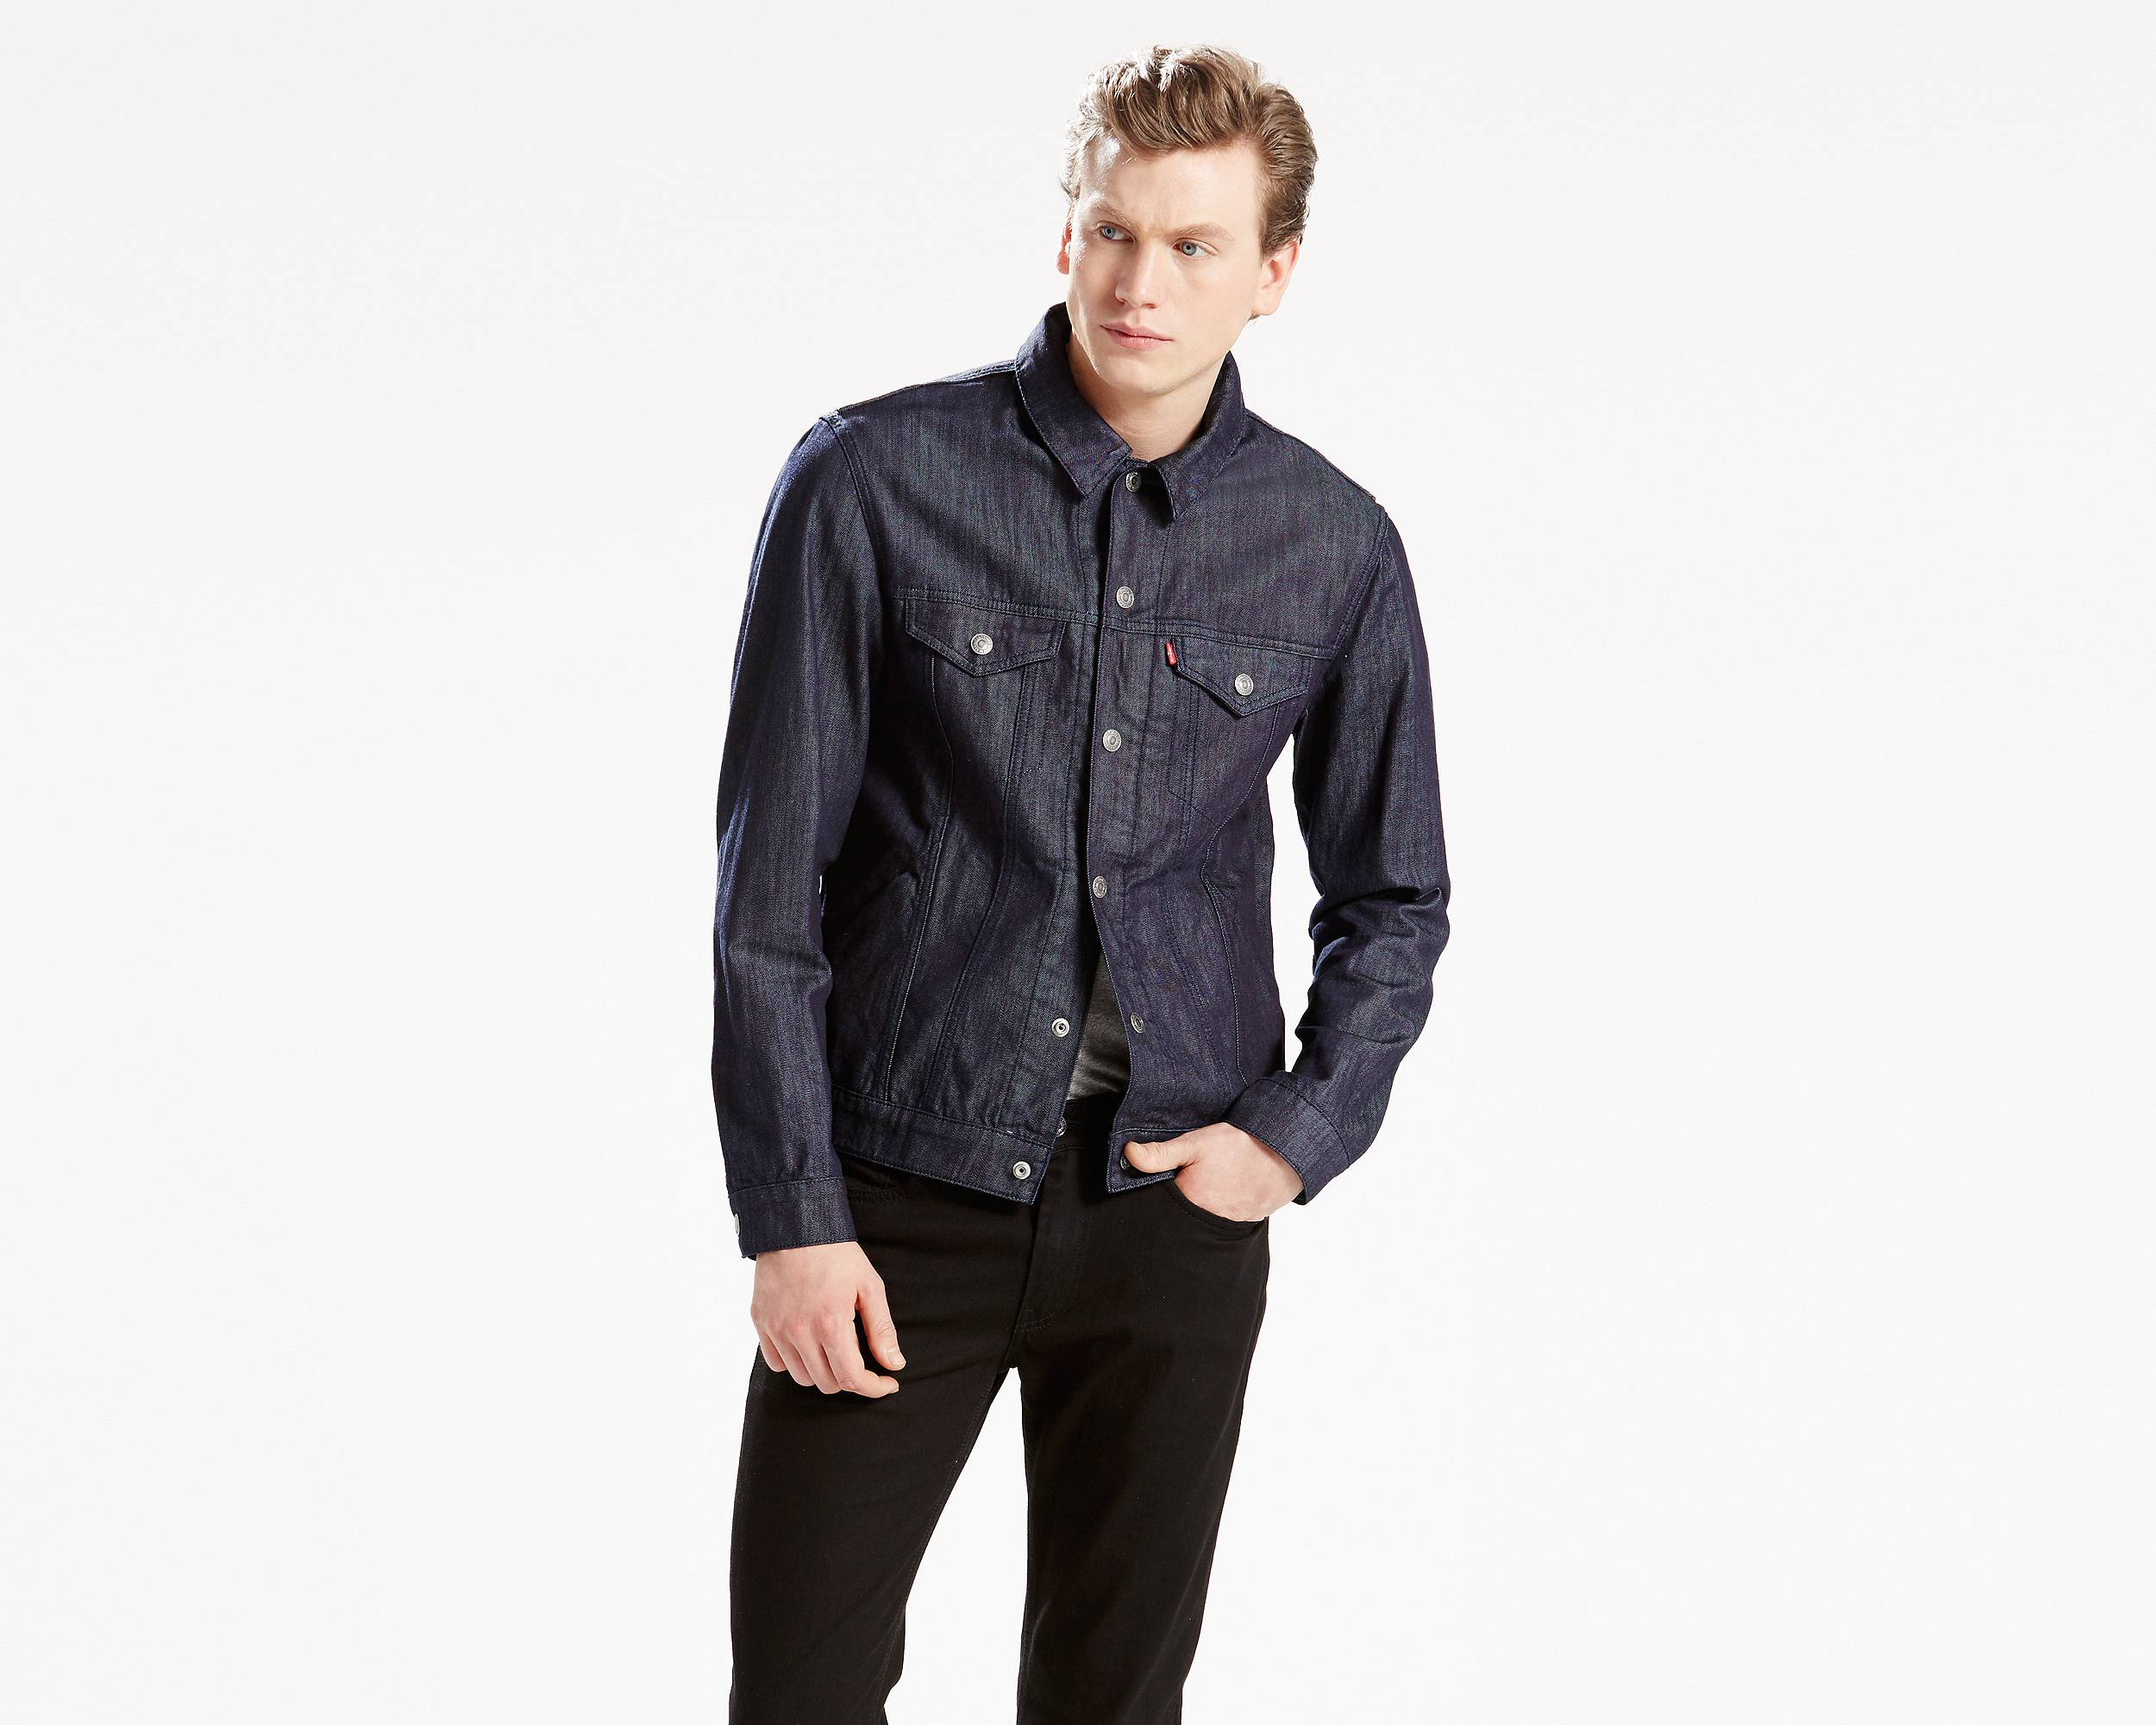 Commuter Jeans & Jackets - Bike Commuter Pants & Shoes | Levi's®